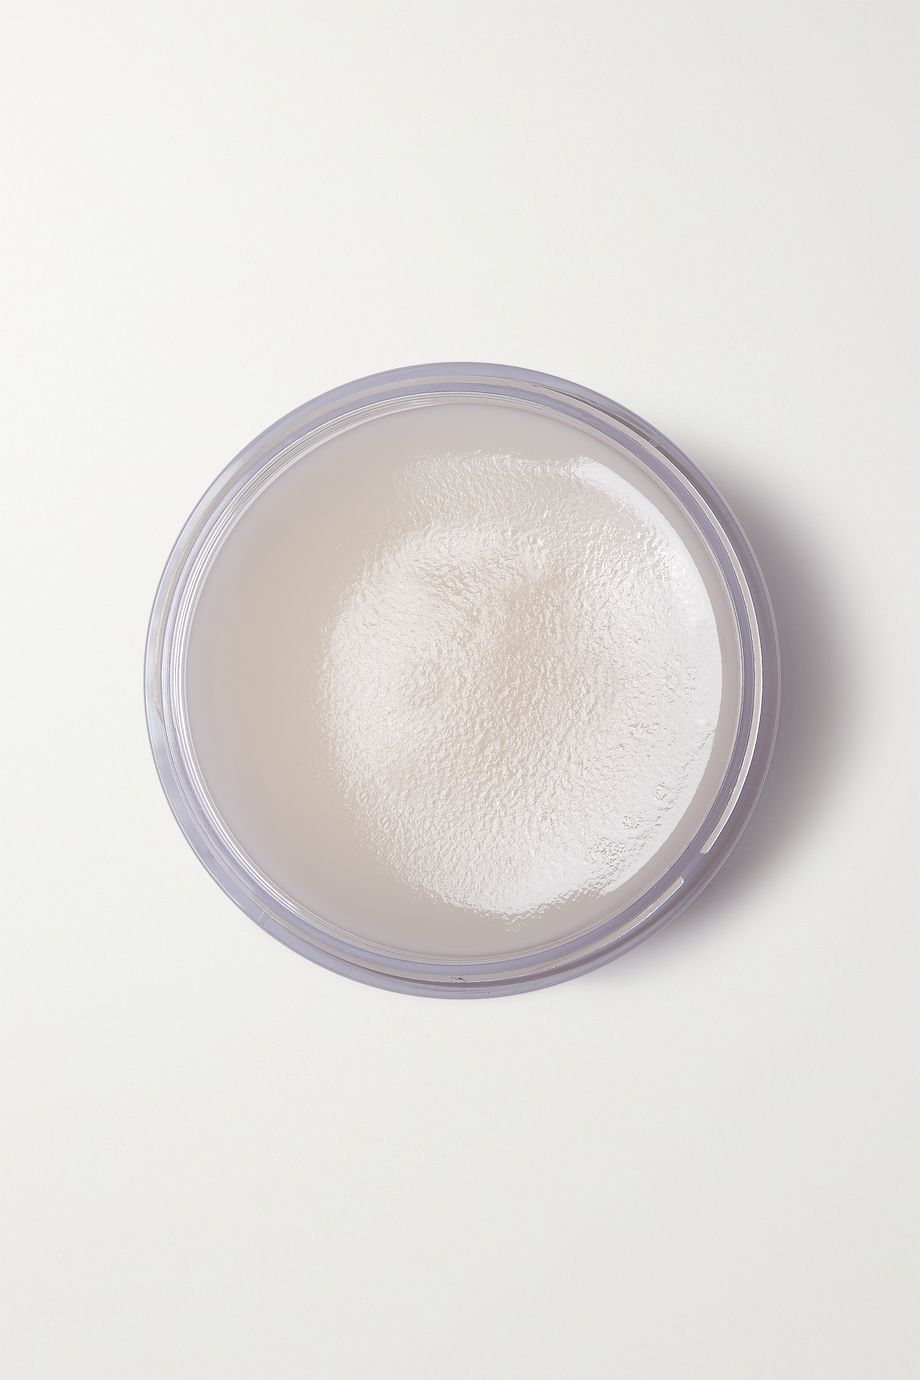 BALMAIN PARIS HAIR COUTURE Shine Wax, 100ml